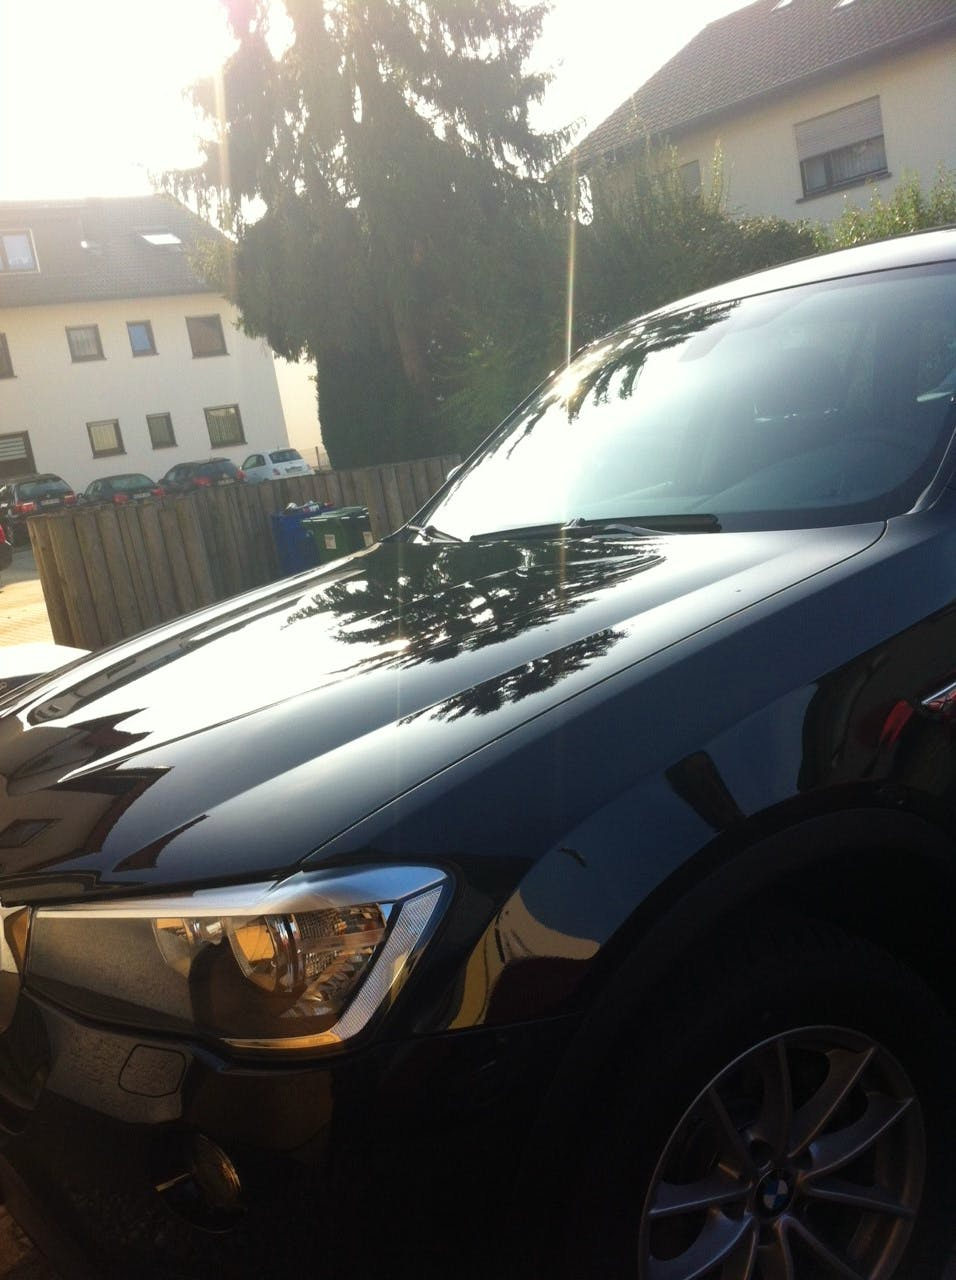 BMW X3 18d mit CD-Player